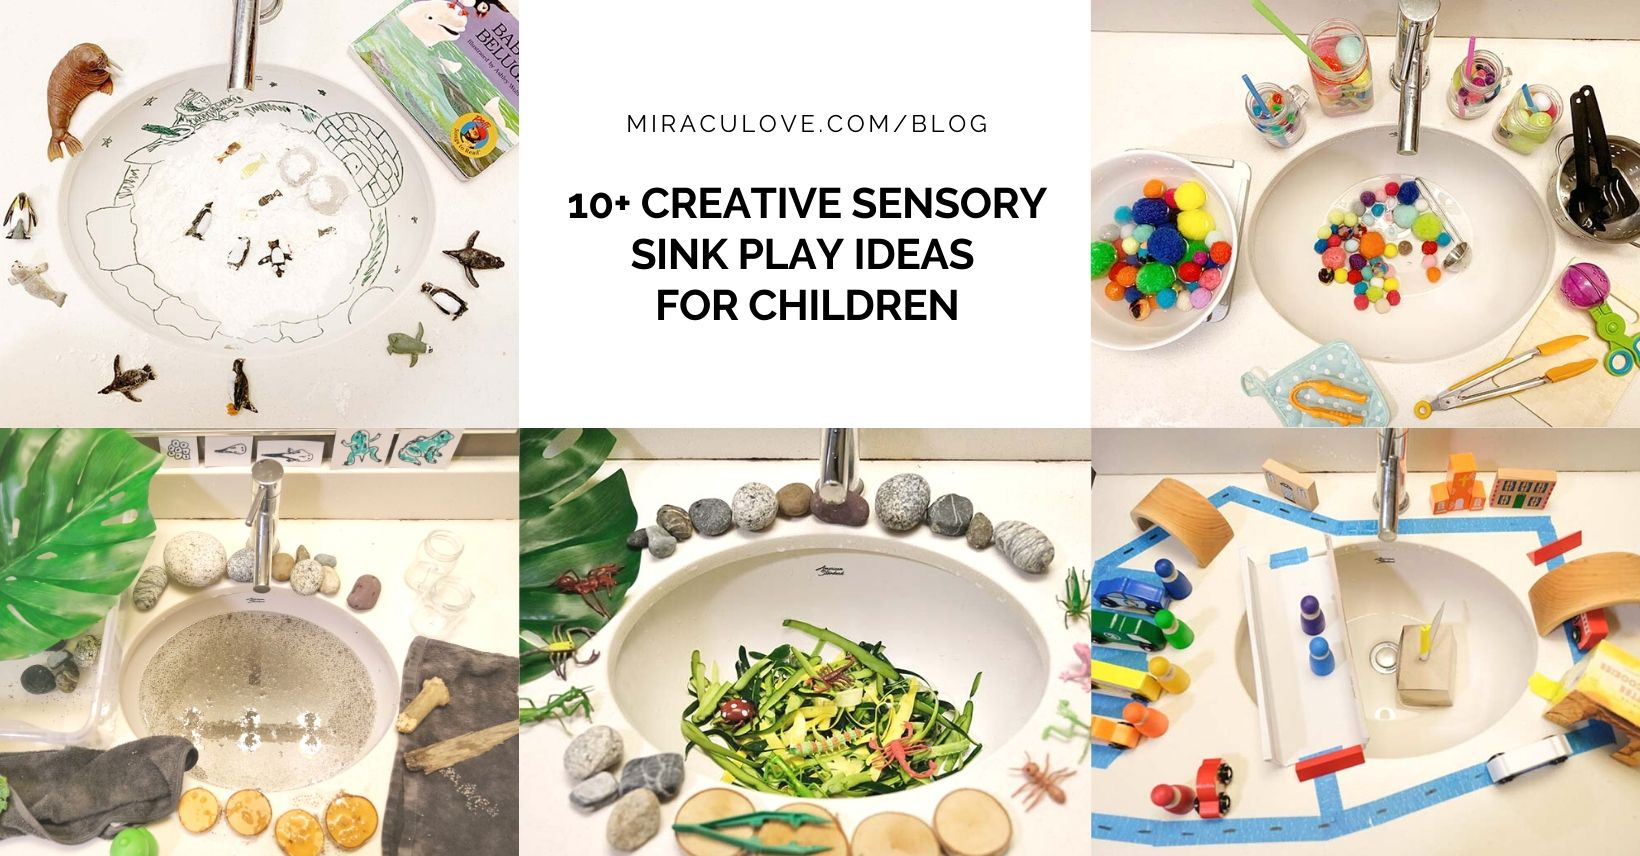 10+ Creative Sensory Sink Play Ideas for Children